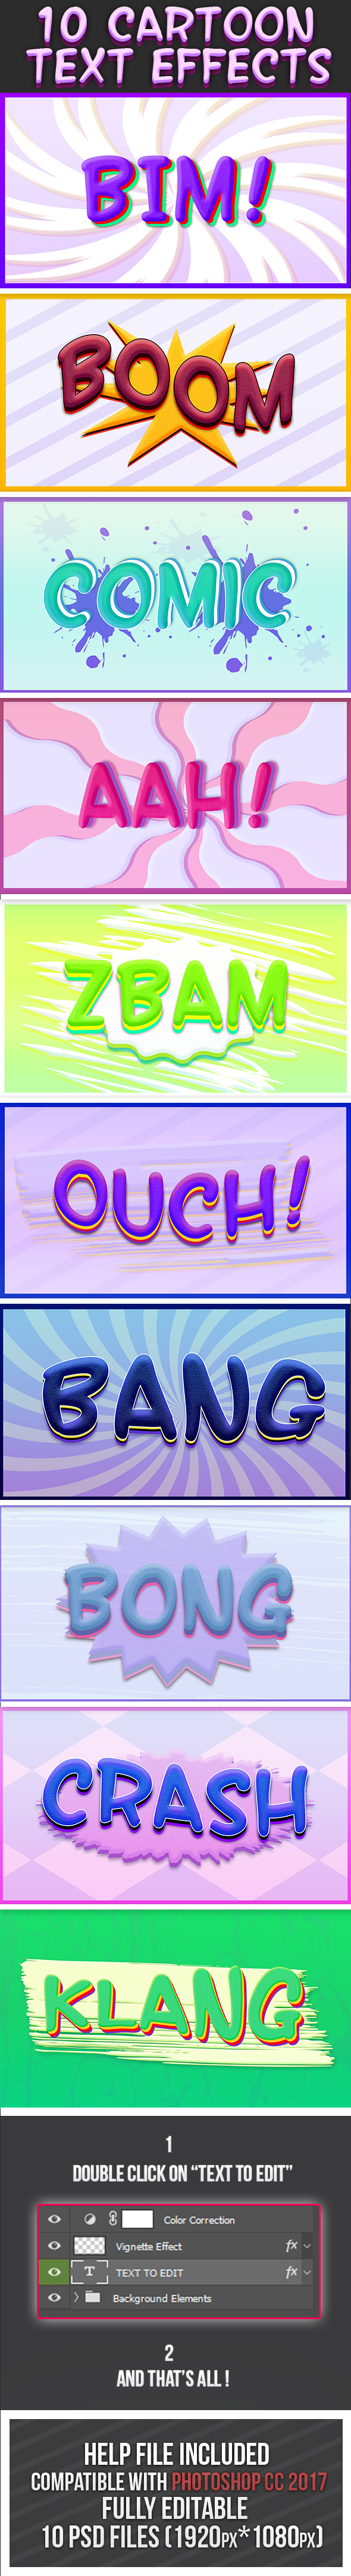 Cartoon Text Effects 6 - Text Effects Styles